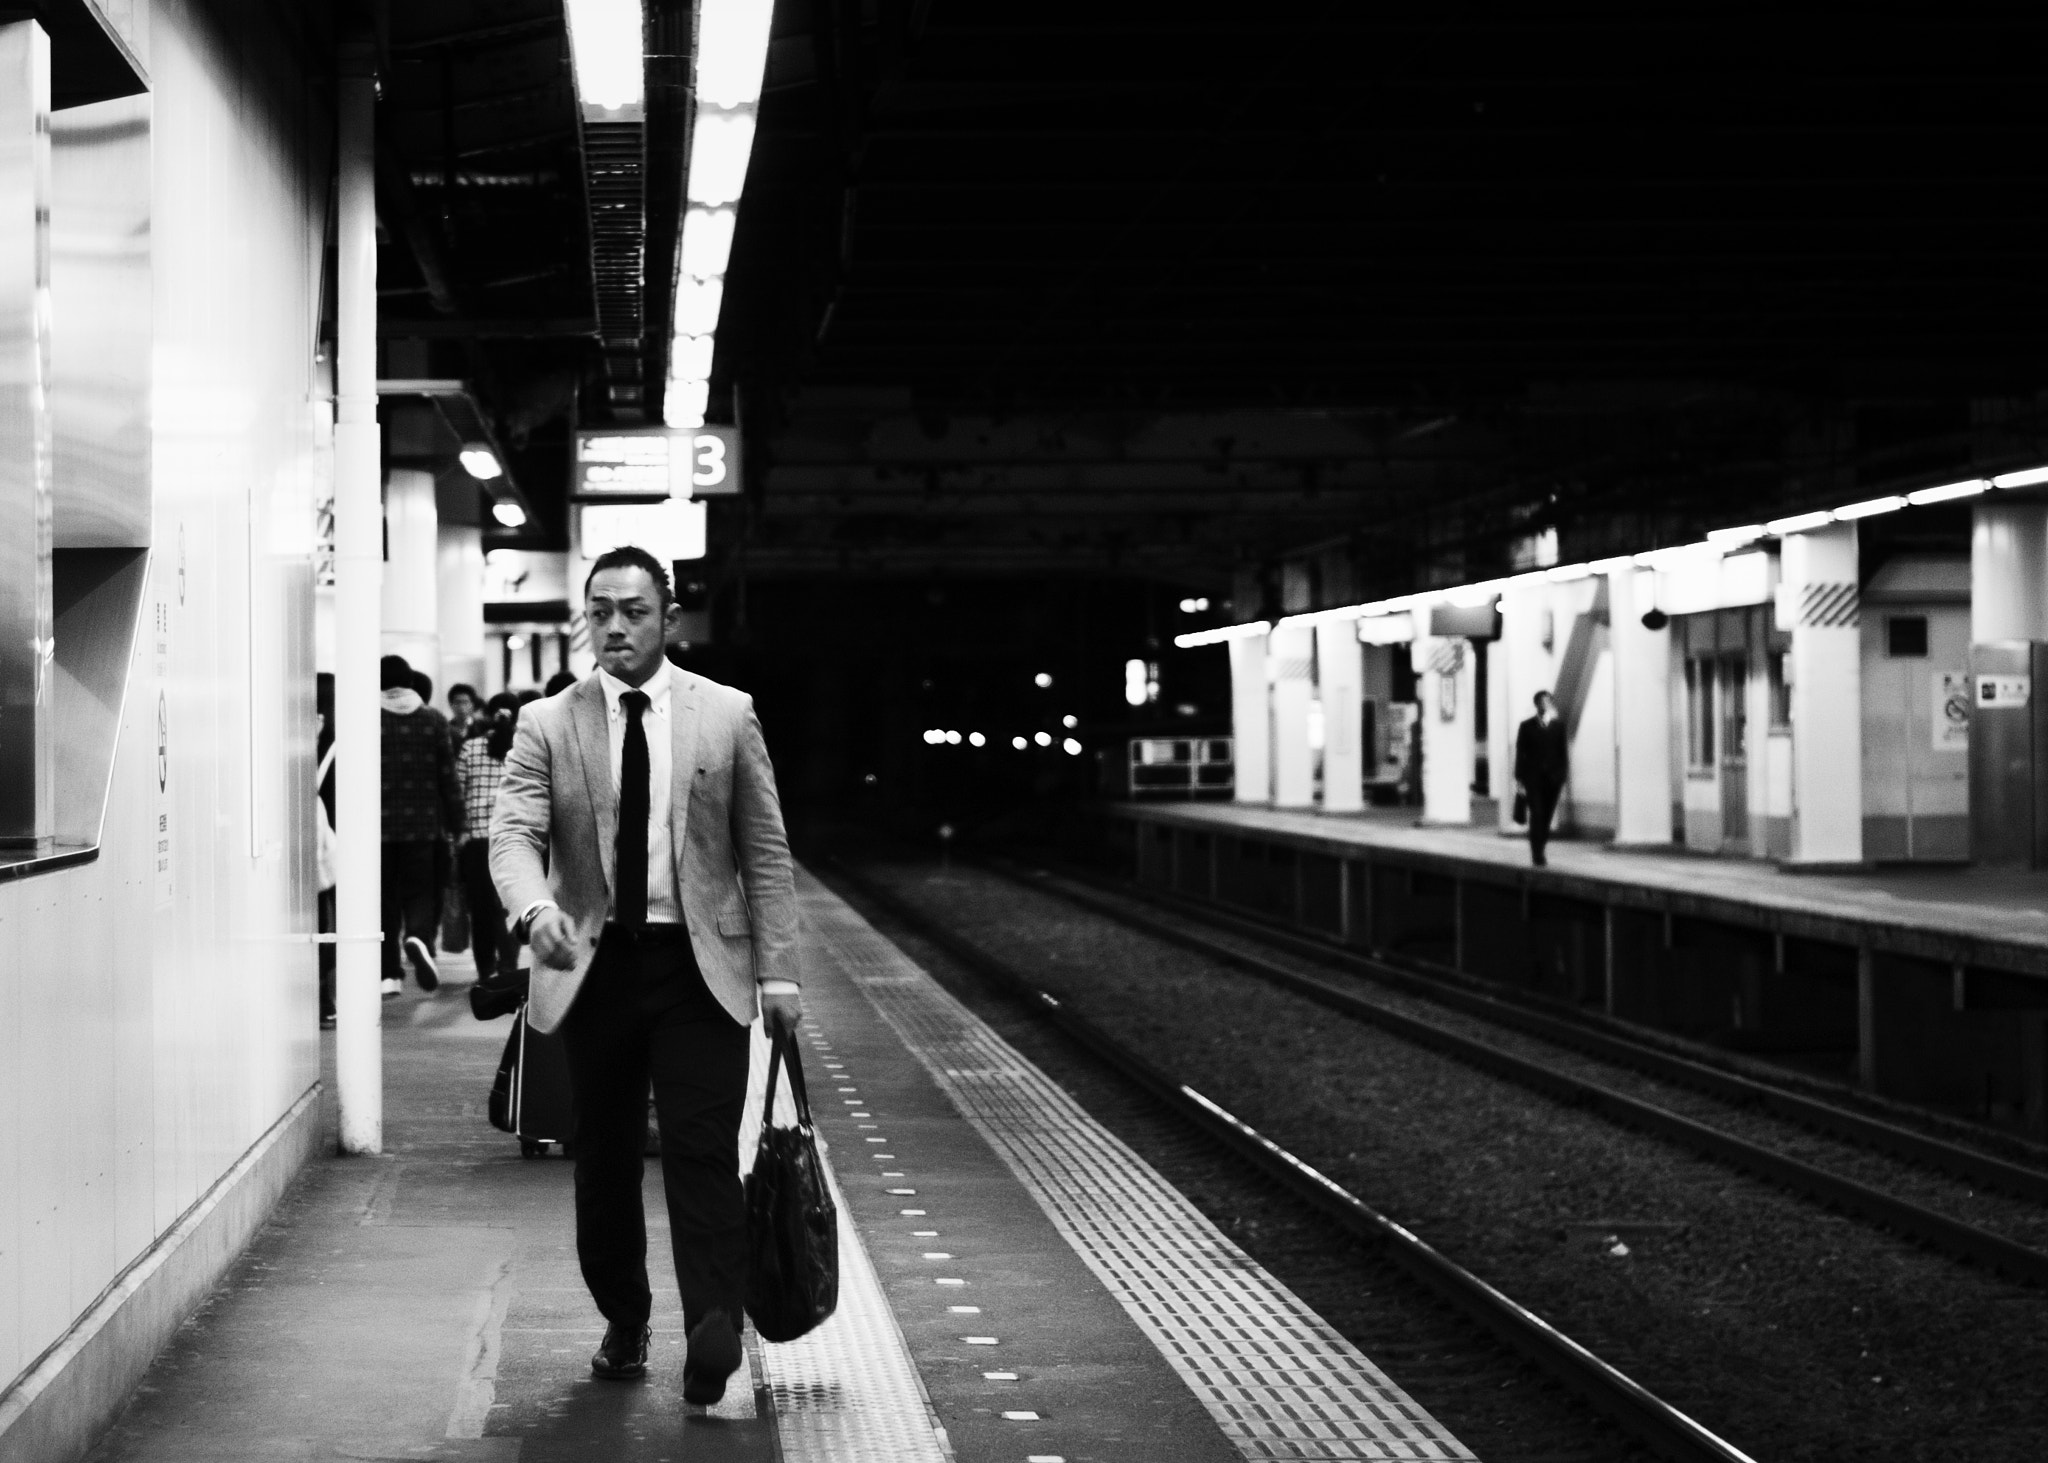 Photograph Commuter by Tina De Guzman on 500px